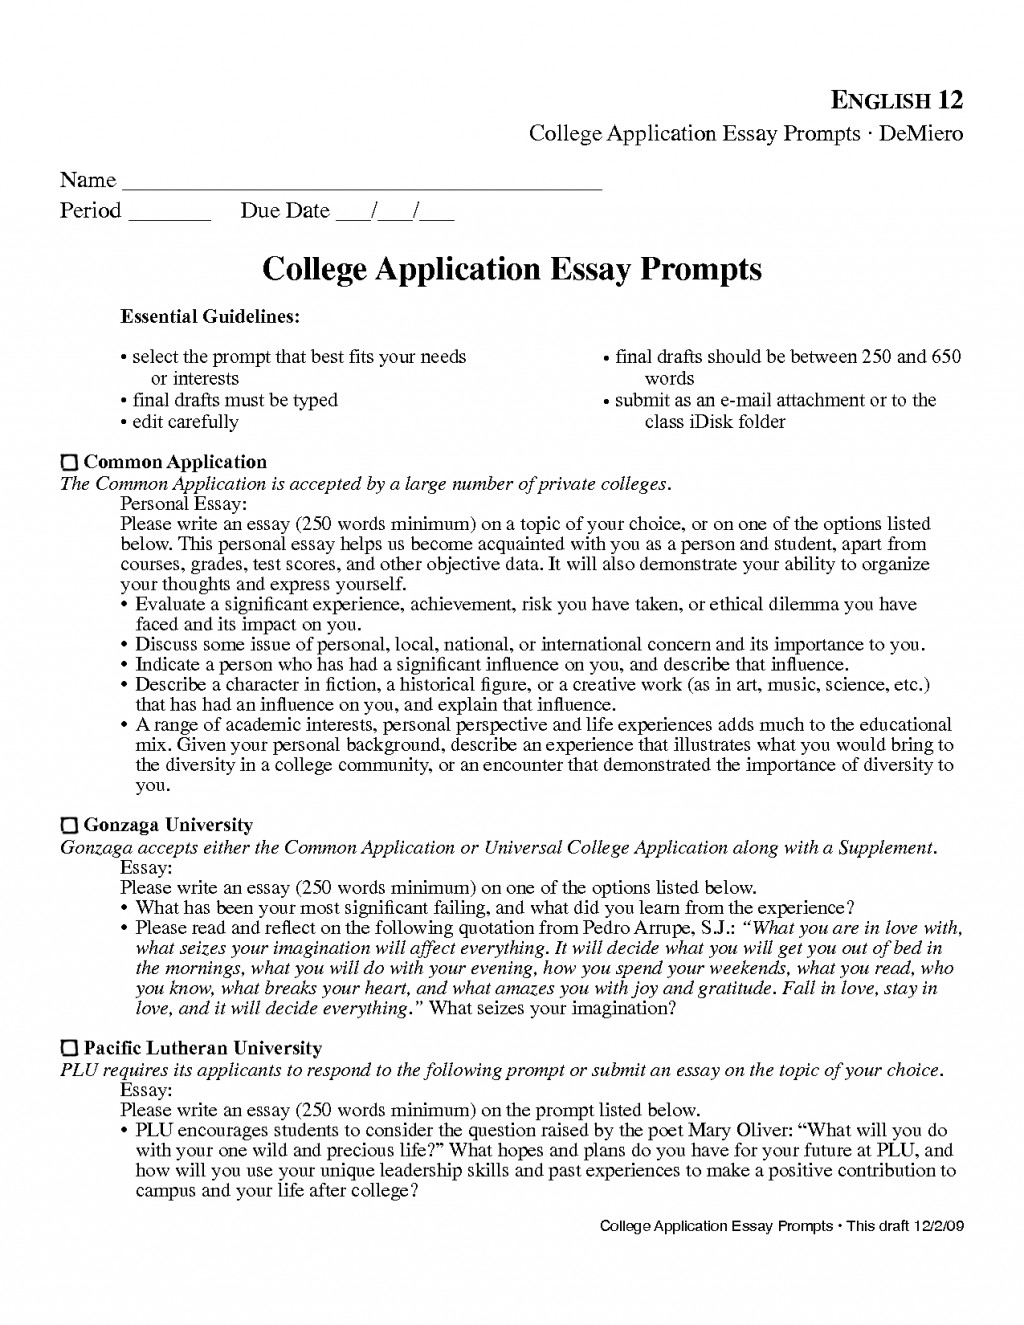 012 College Admissiony Topics Writings Andys Prompts Onwe Bioinnovate Co Throu Admissions Question Examples To Avoid Samples App Good Prompt Common Application Surprising Essay 2015 Large